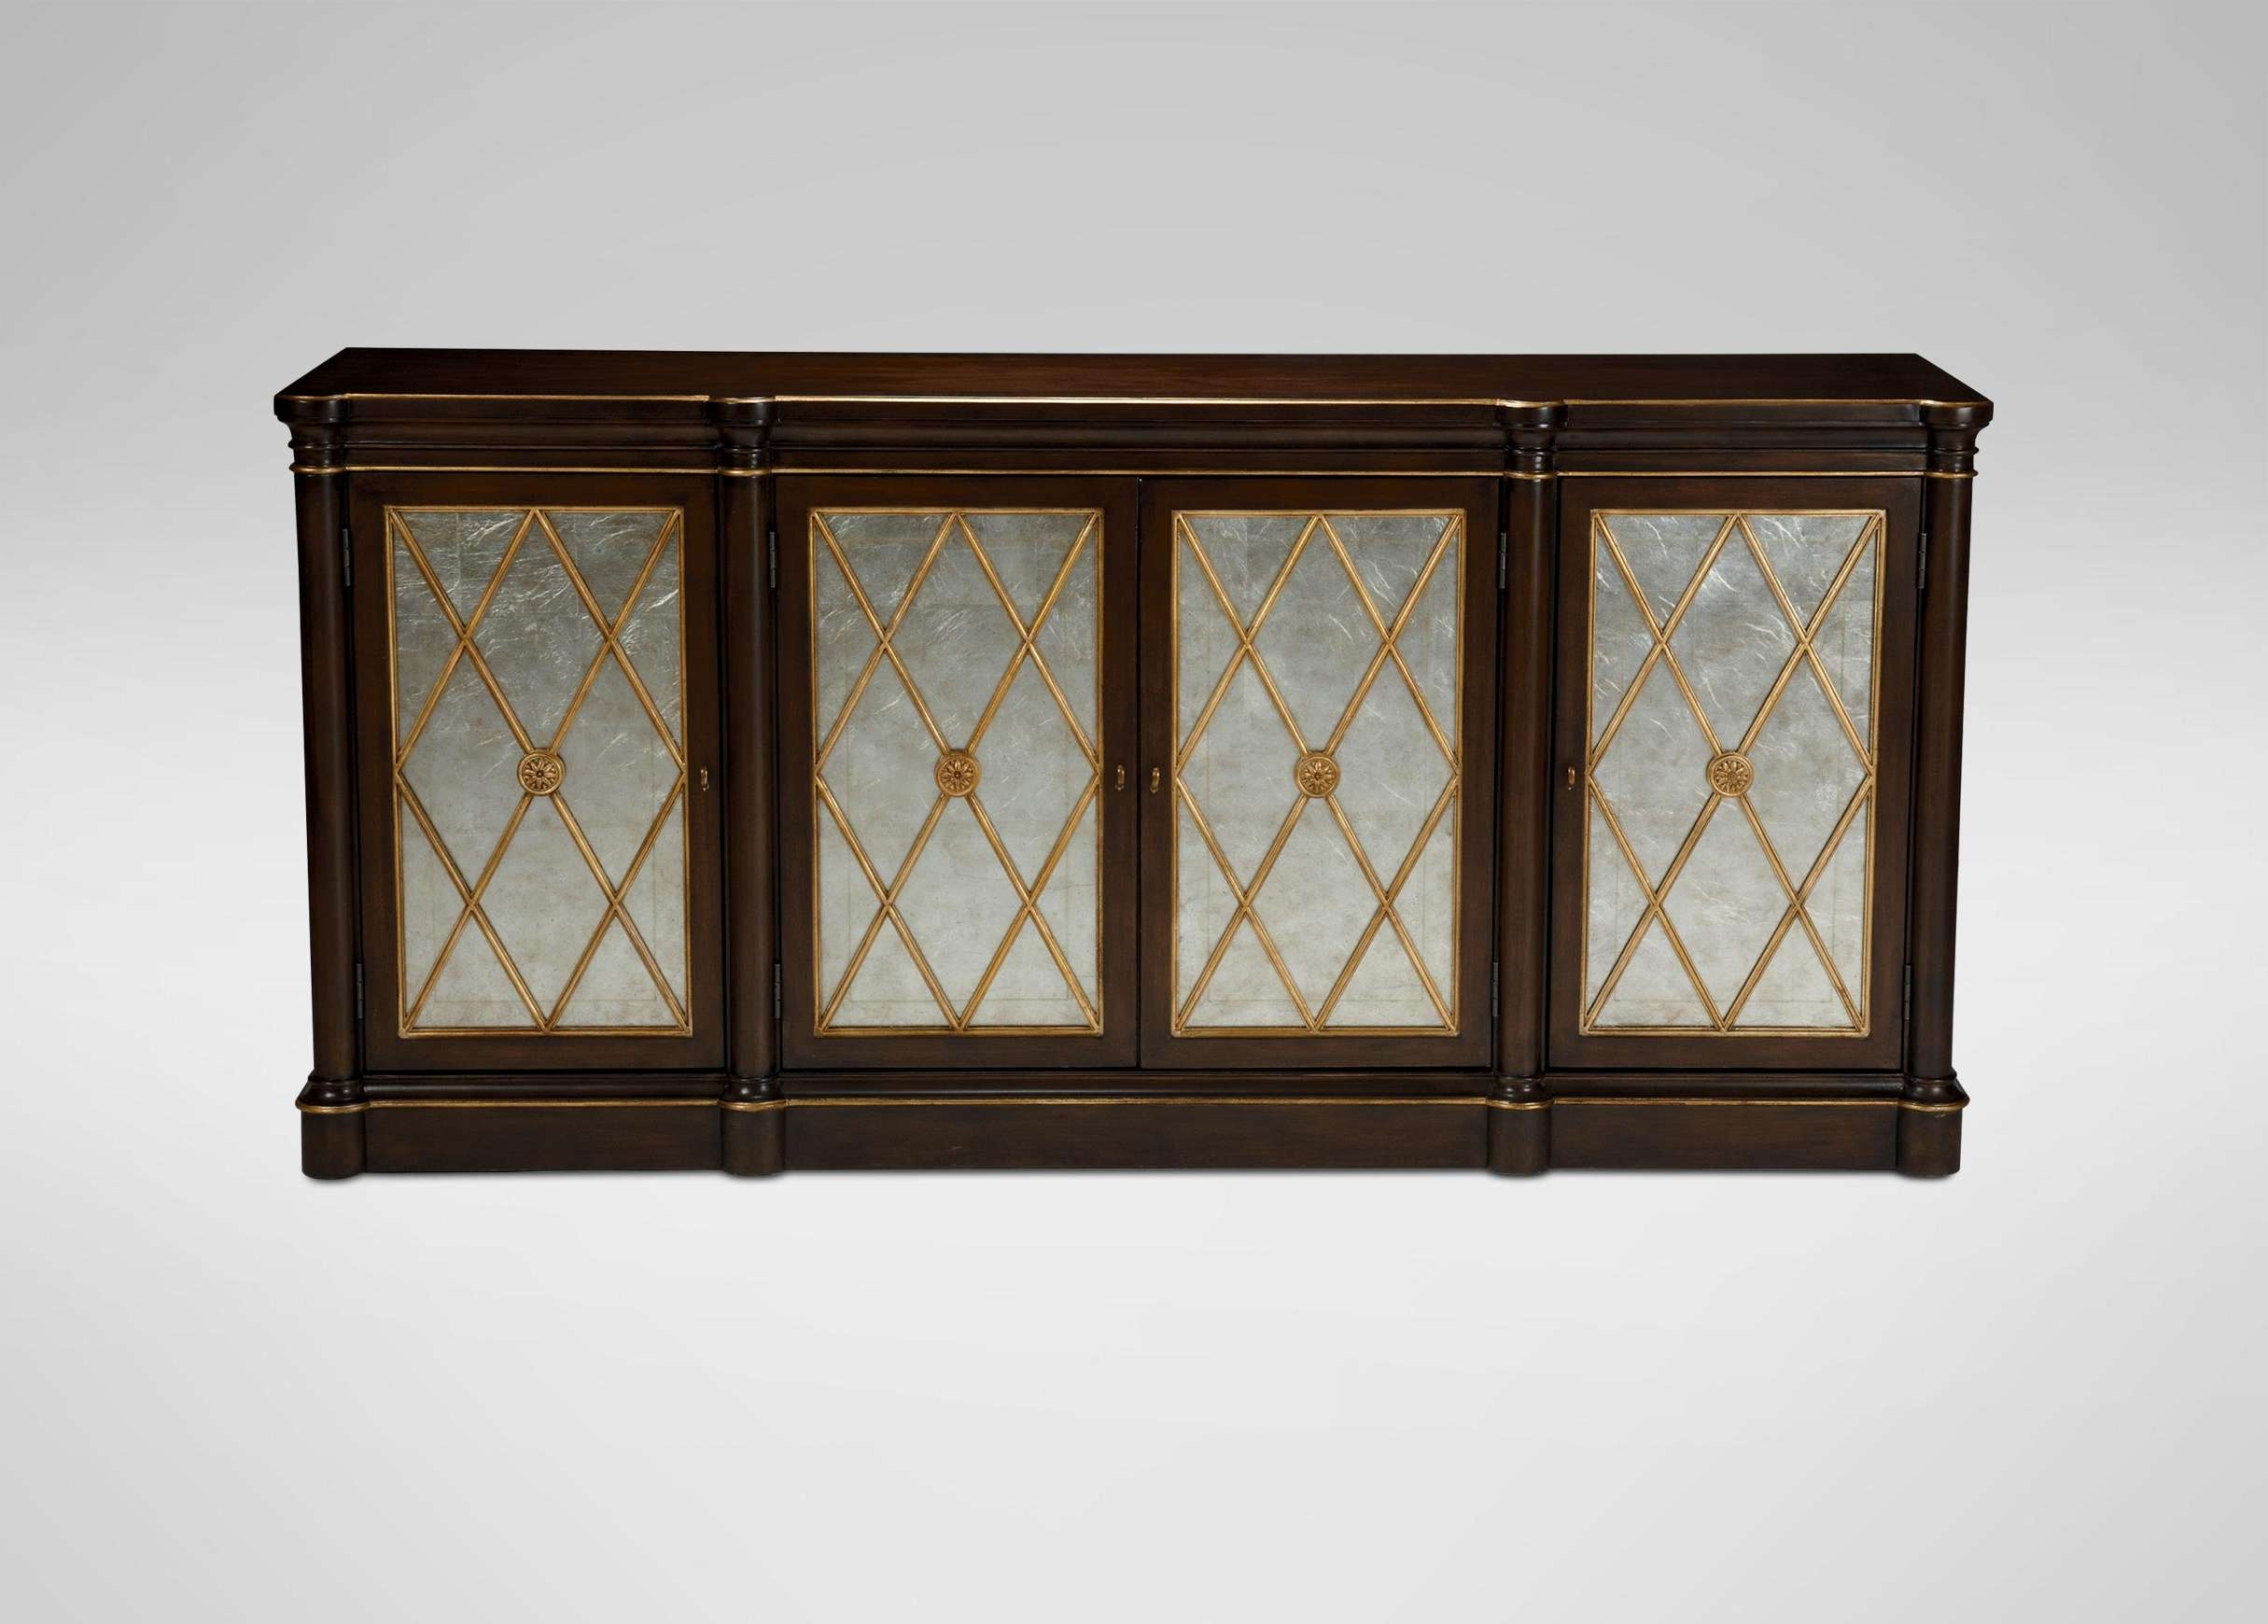 Hopkins Buffet | Buffets, Sideboards & Servers Intended For Ethan Allen Sideboards (View 9 of 20)